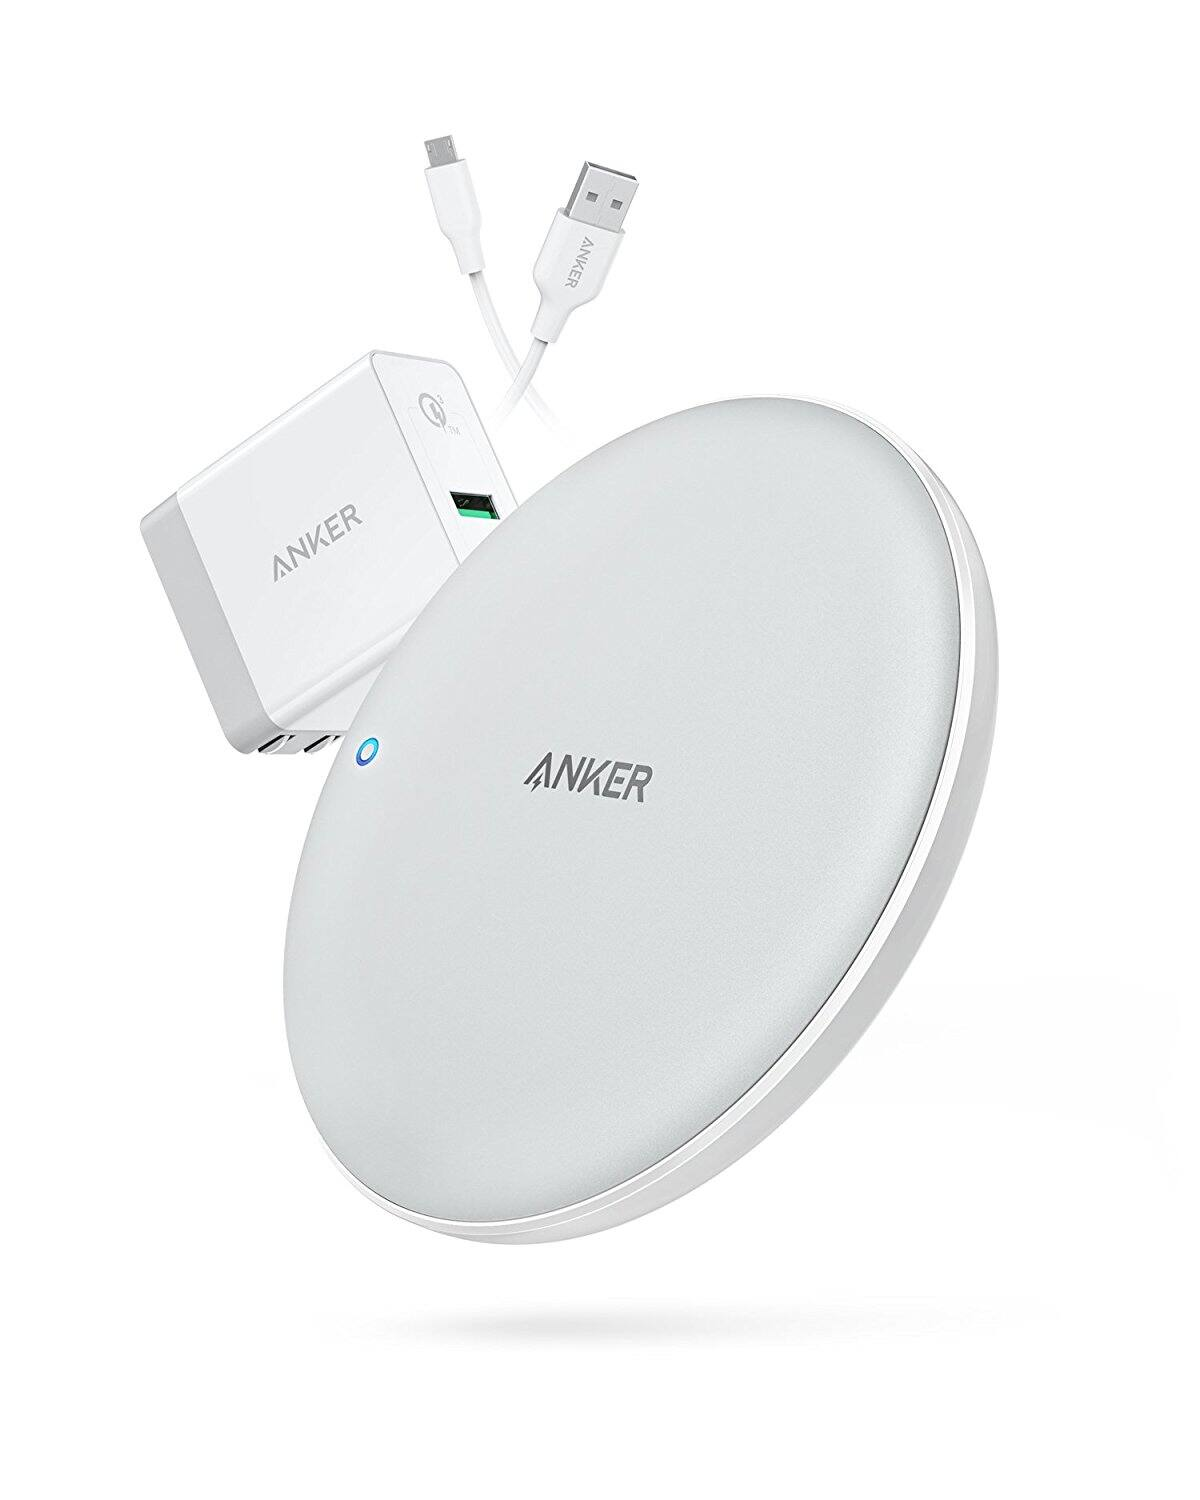 Anker PowerWave 7.5 Pad: 7.5W Fast Wireless Charger w/ Quick Charge 3.0 (AC Adapter Included) $31.99